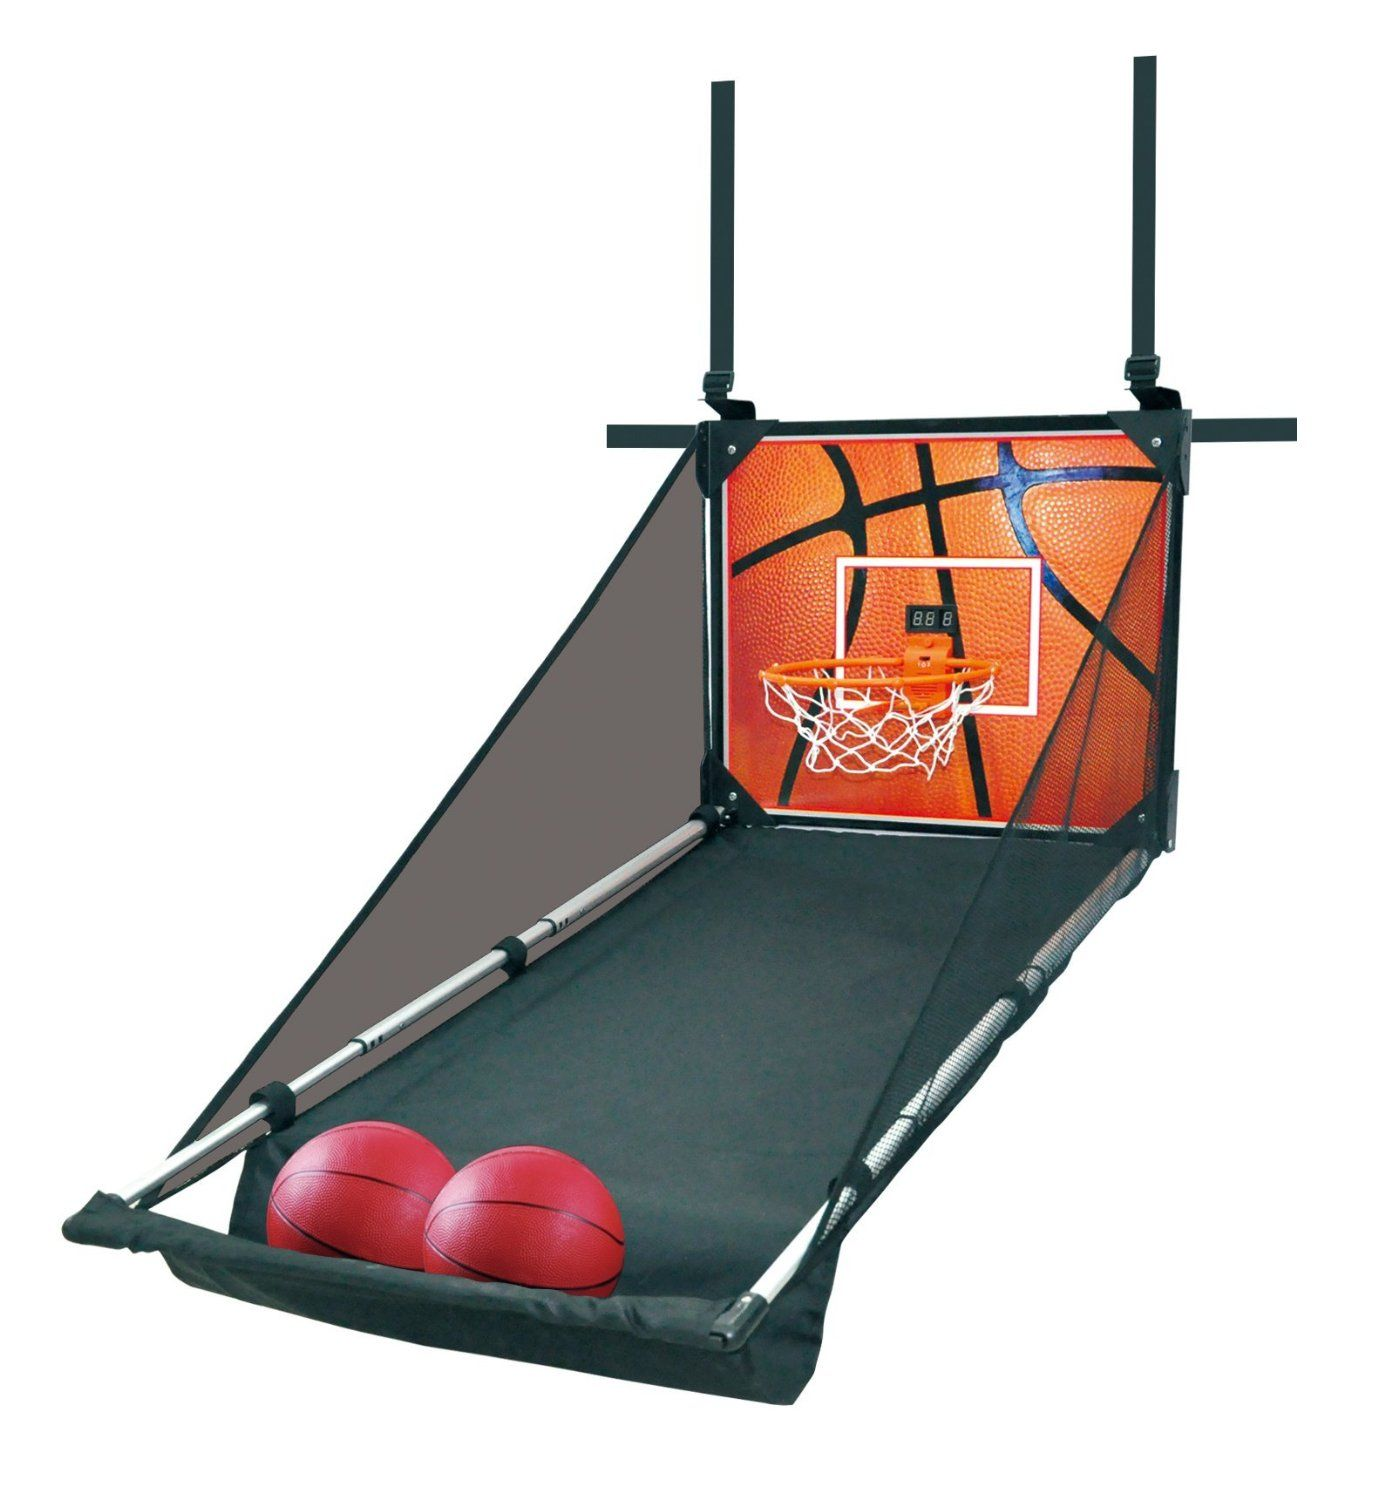 sportshero indoor rebound hanging basketball hoop game set includes